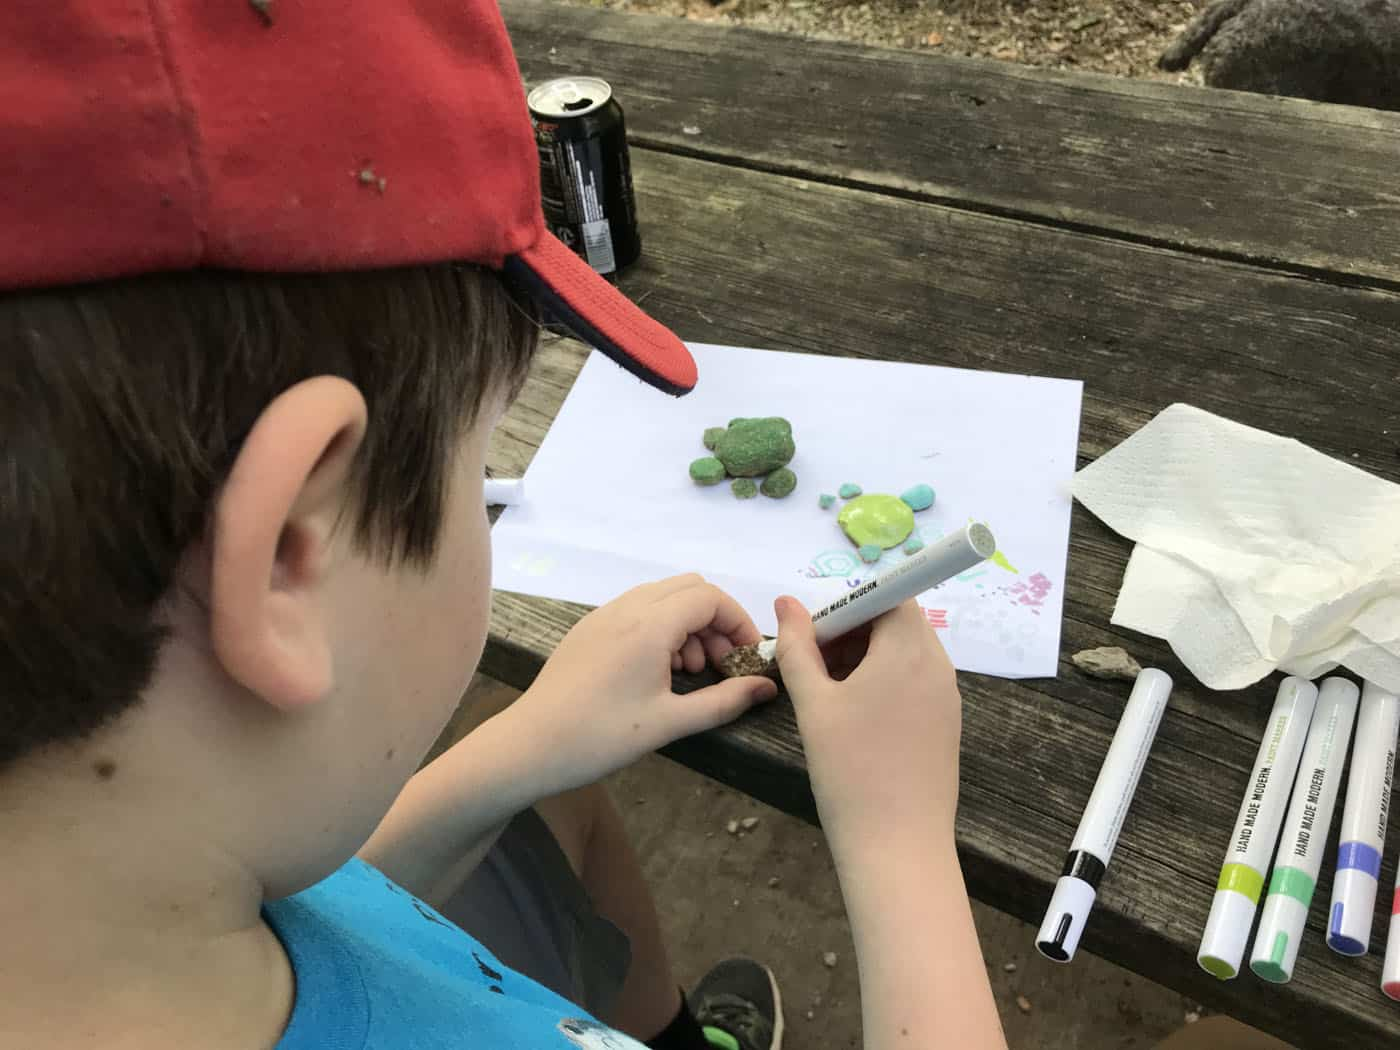 kid paints rocks with acrylic paint pen on a camping trip